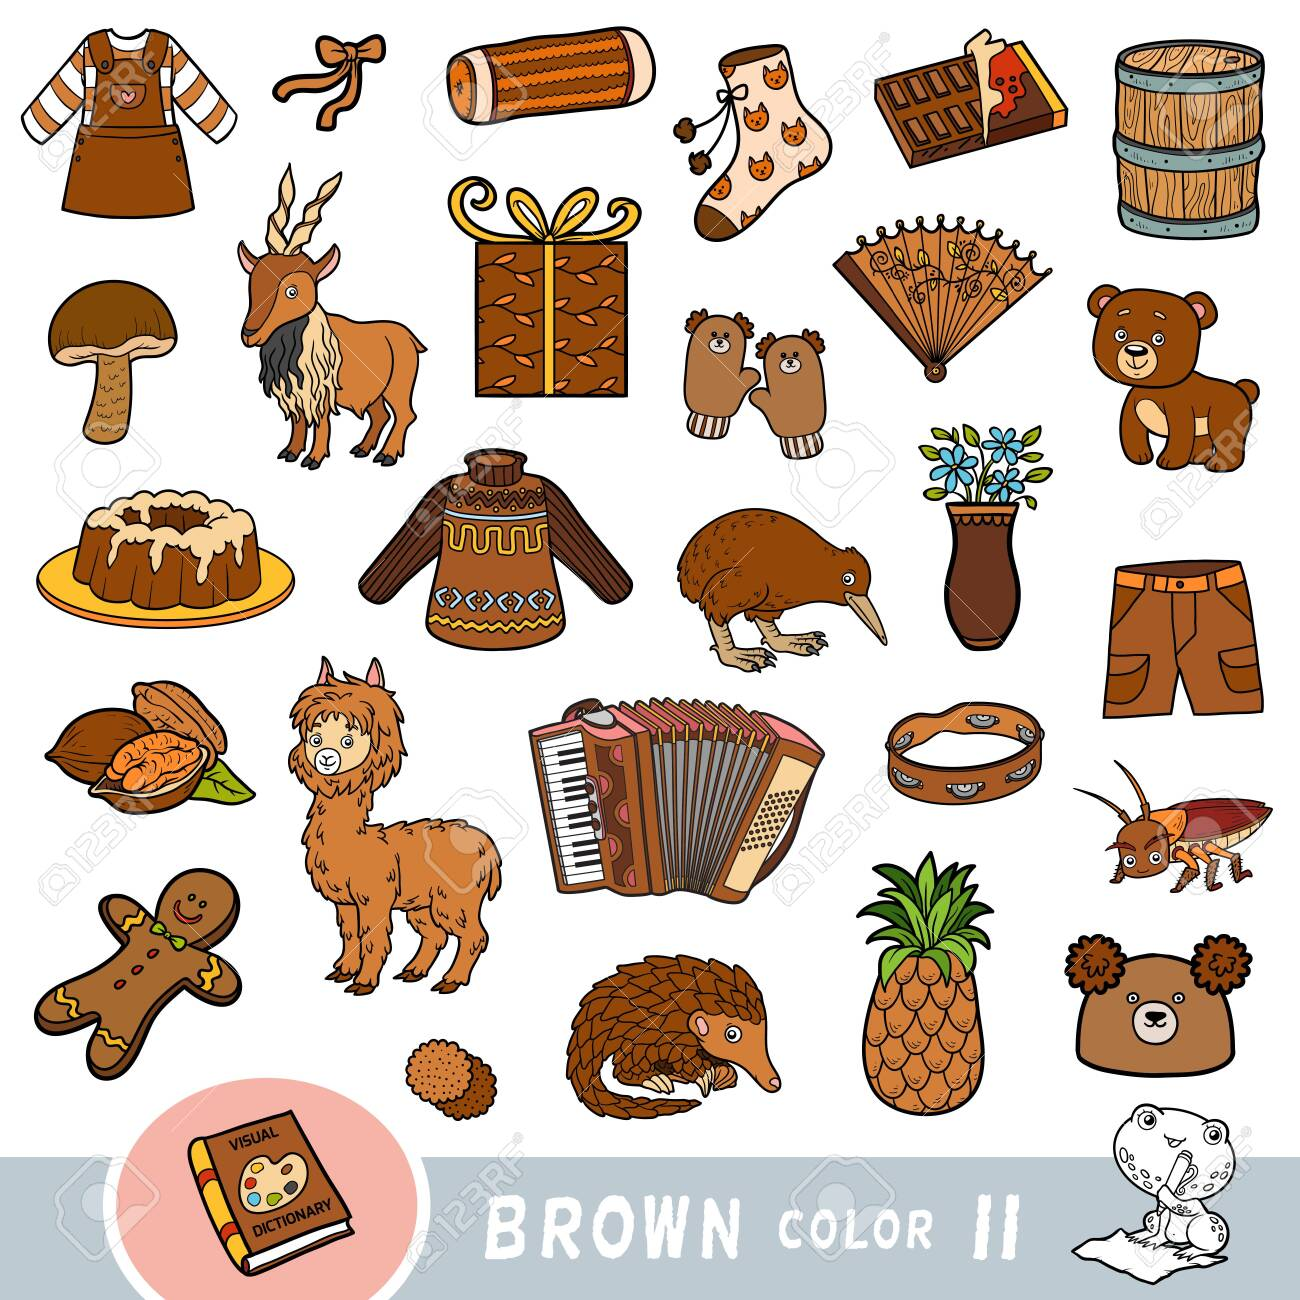 Colorful set of brown color objects. Visual dictionary for children about the basic colors. Cartoon images to learning in kindergarten and preschool - 136781256